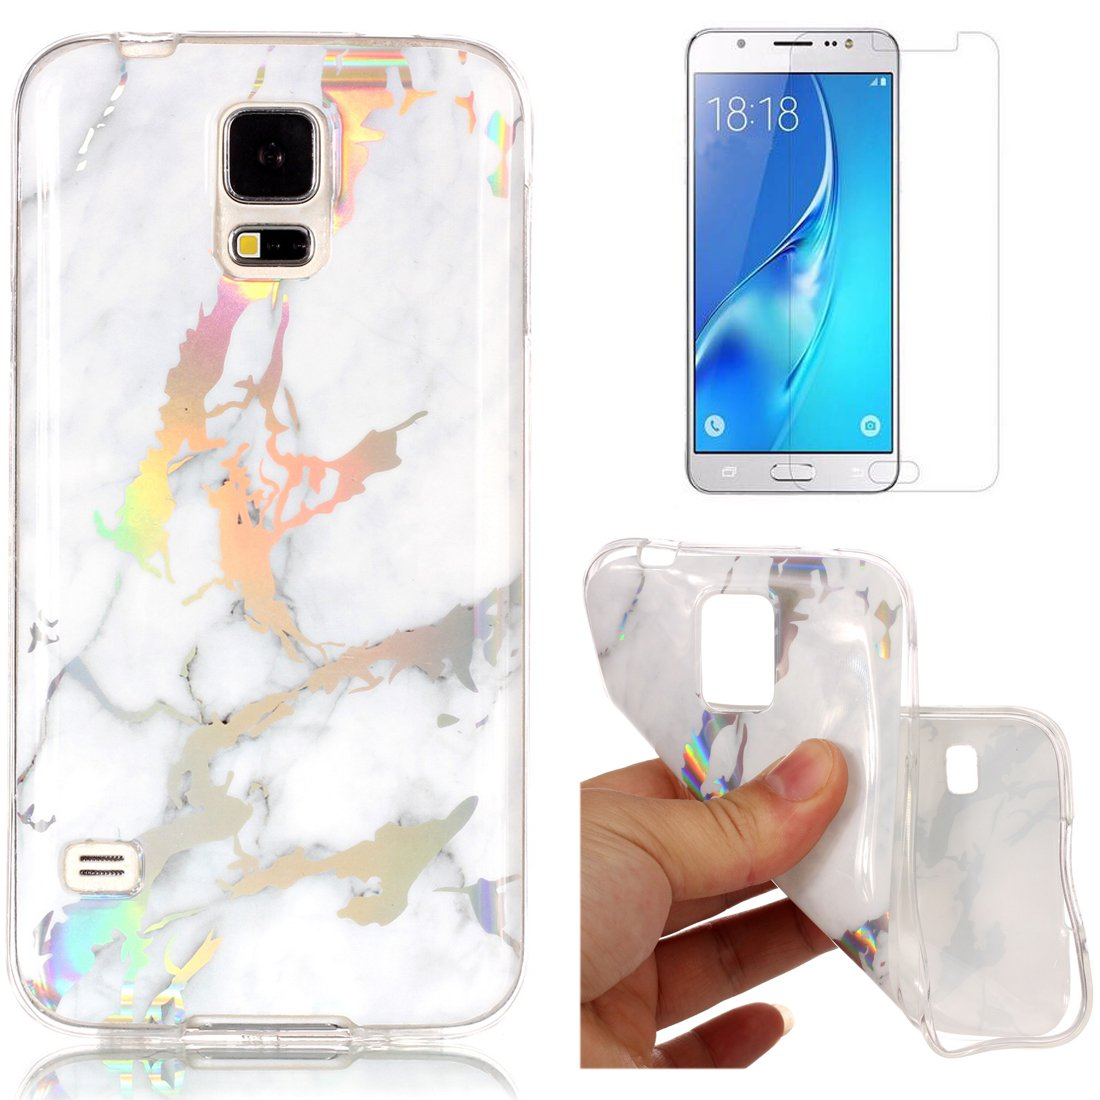 For Samsung Galaxy S5 Marble Case Purple,OYIME Unique Luxury Glitter Colorful Plating Pattern Skin Design Clear Silicone Rubber Slim Fit Ultra Thin Protective Back Cover Glossy Soft Gel TPU Shell Shockproof Drop Protection Protective Transparent Bumper and